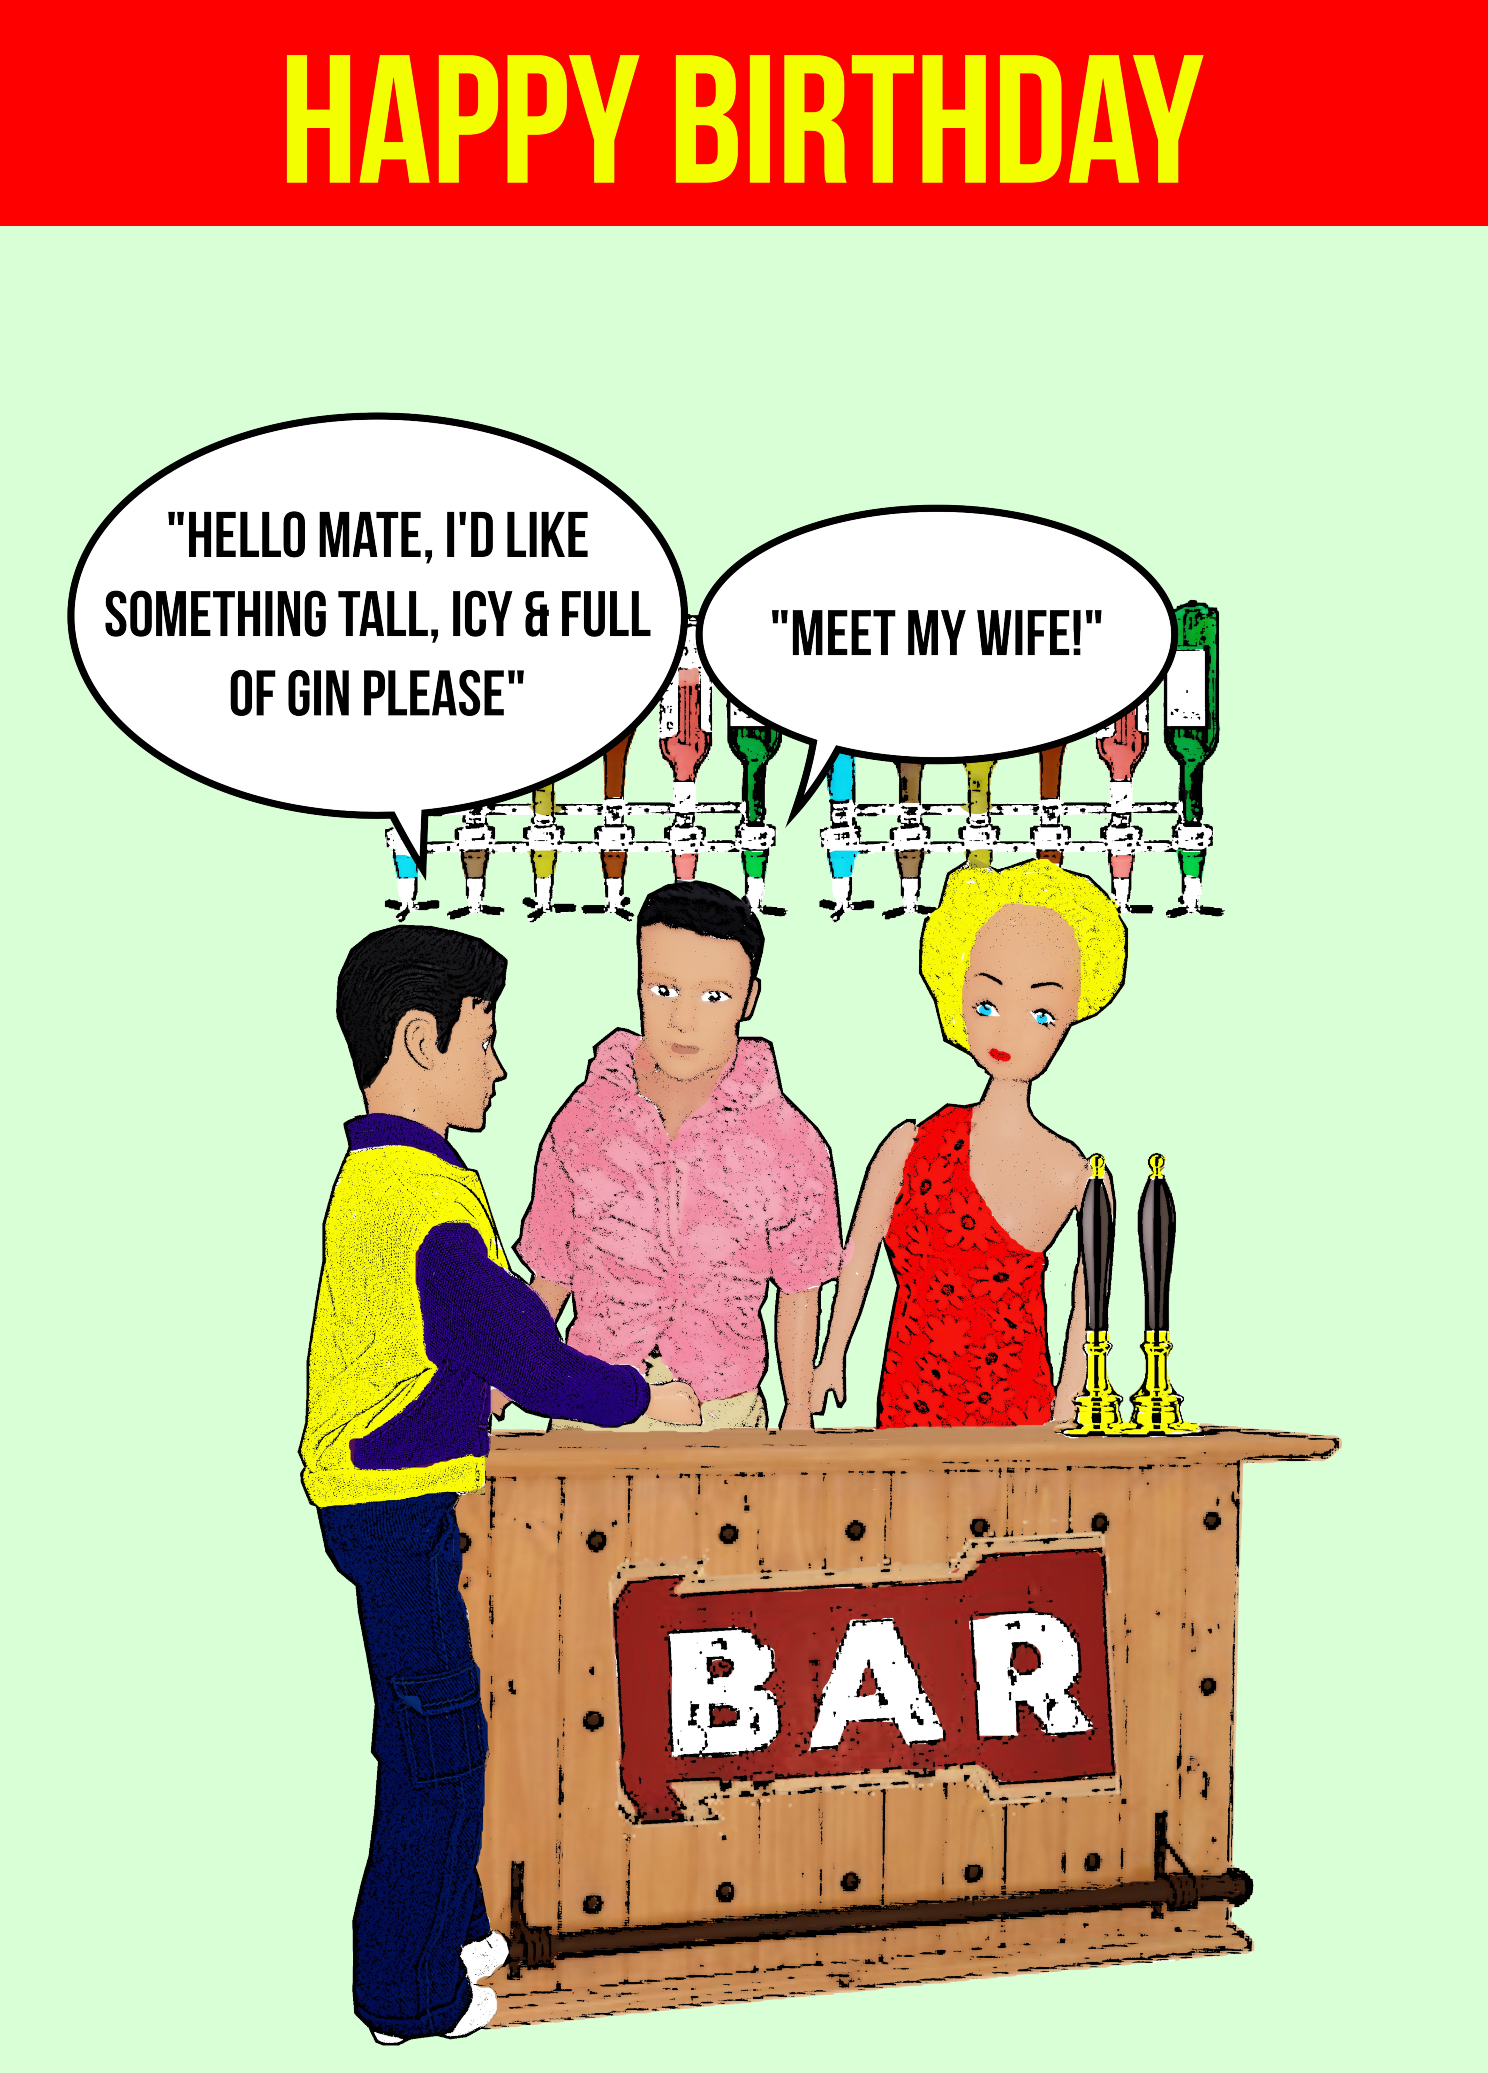 Pin On Rude Funny Gay Hilarious Greetings Cards